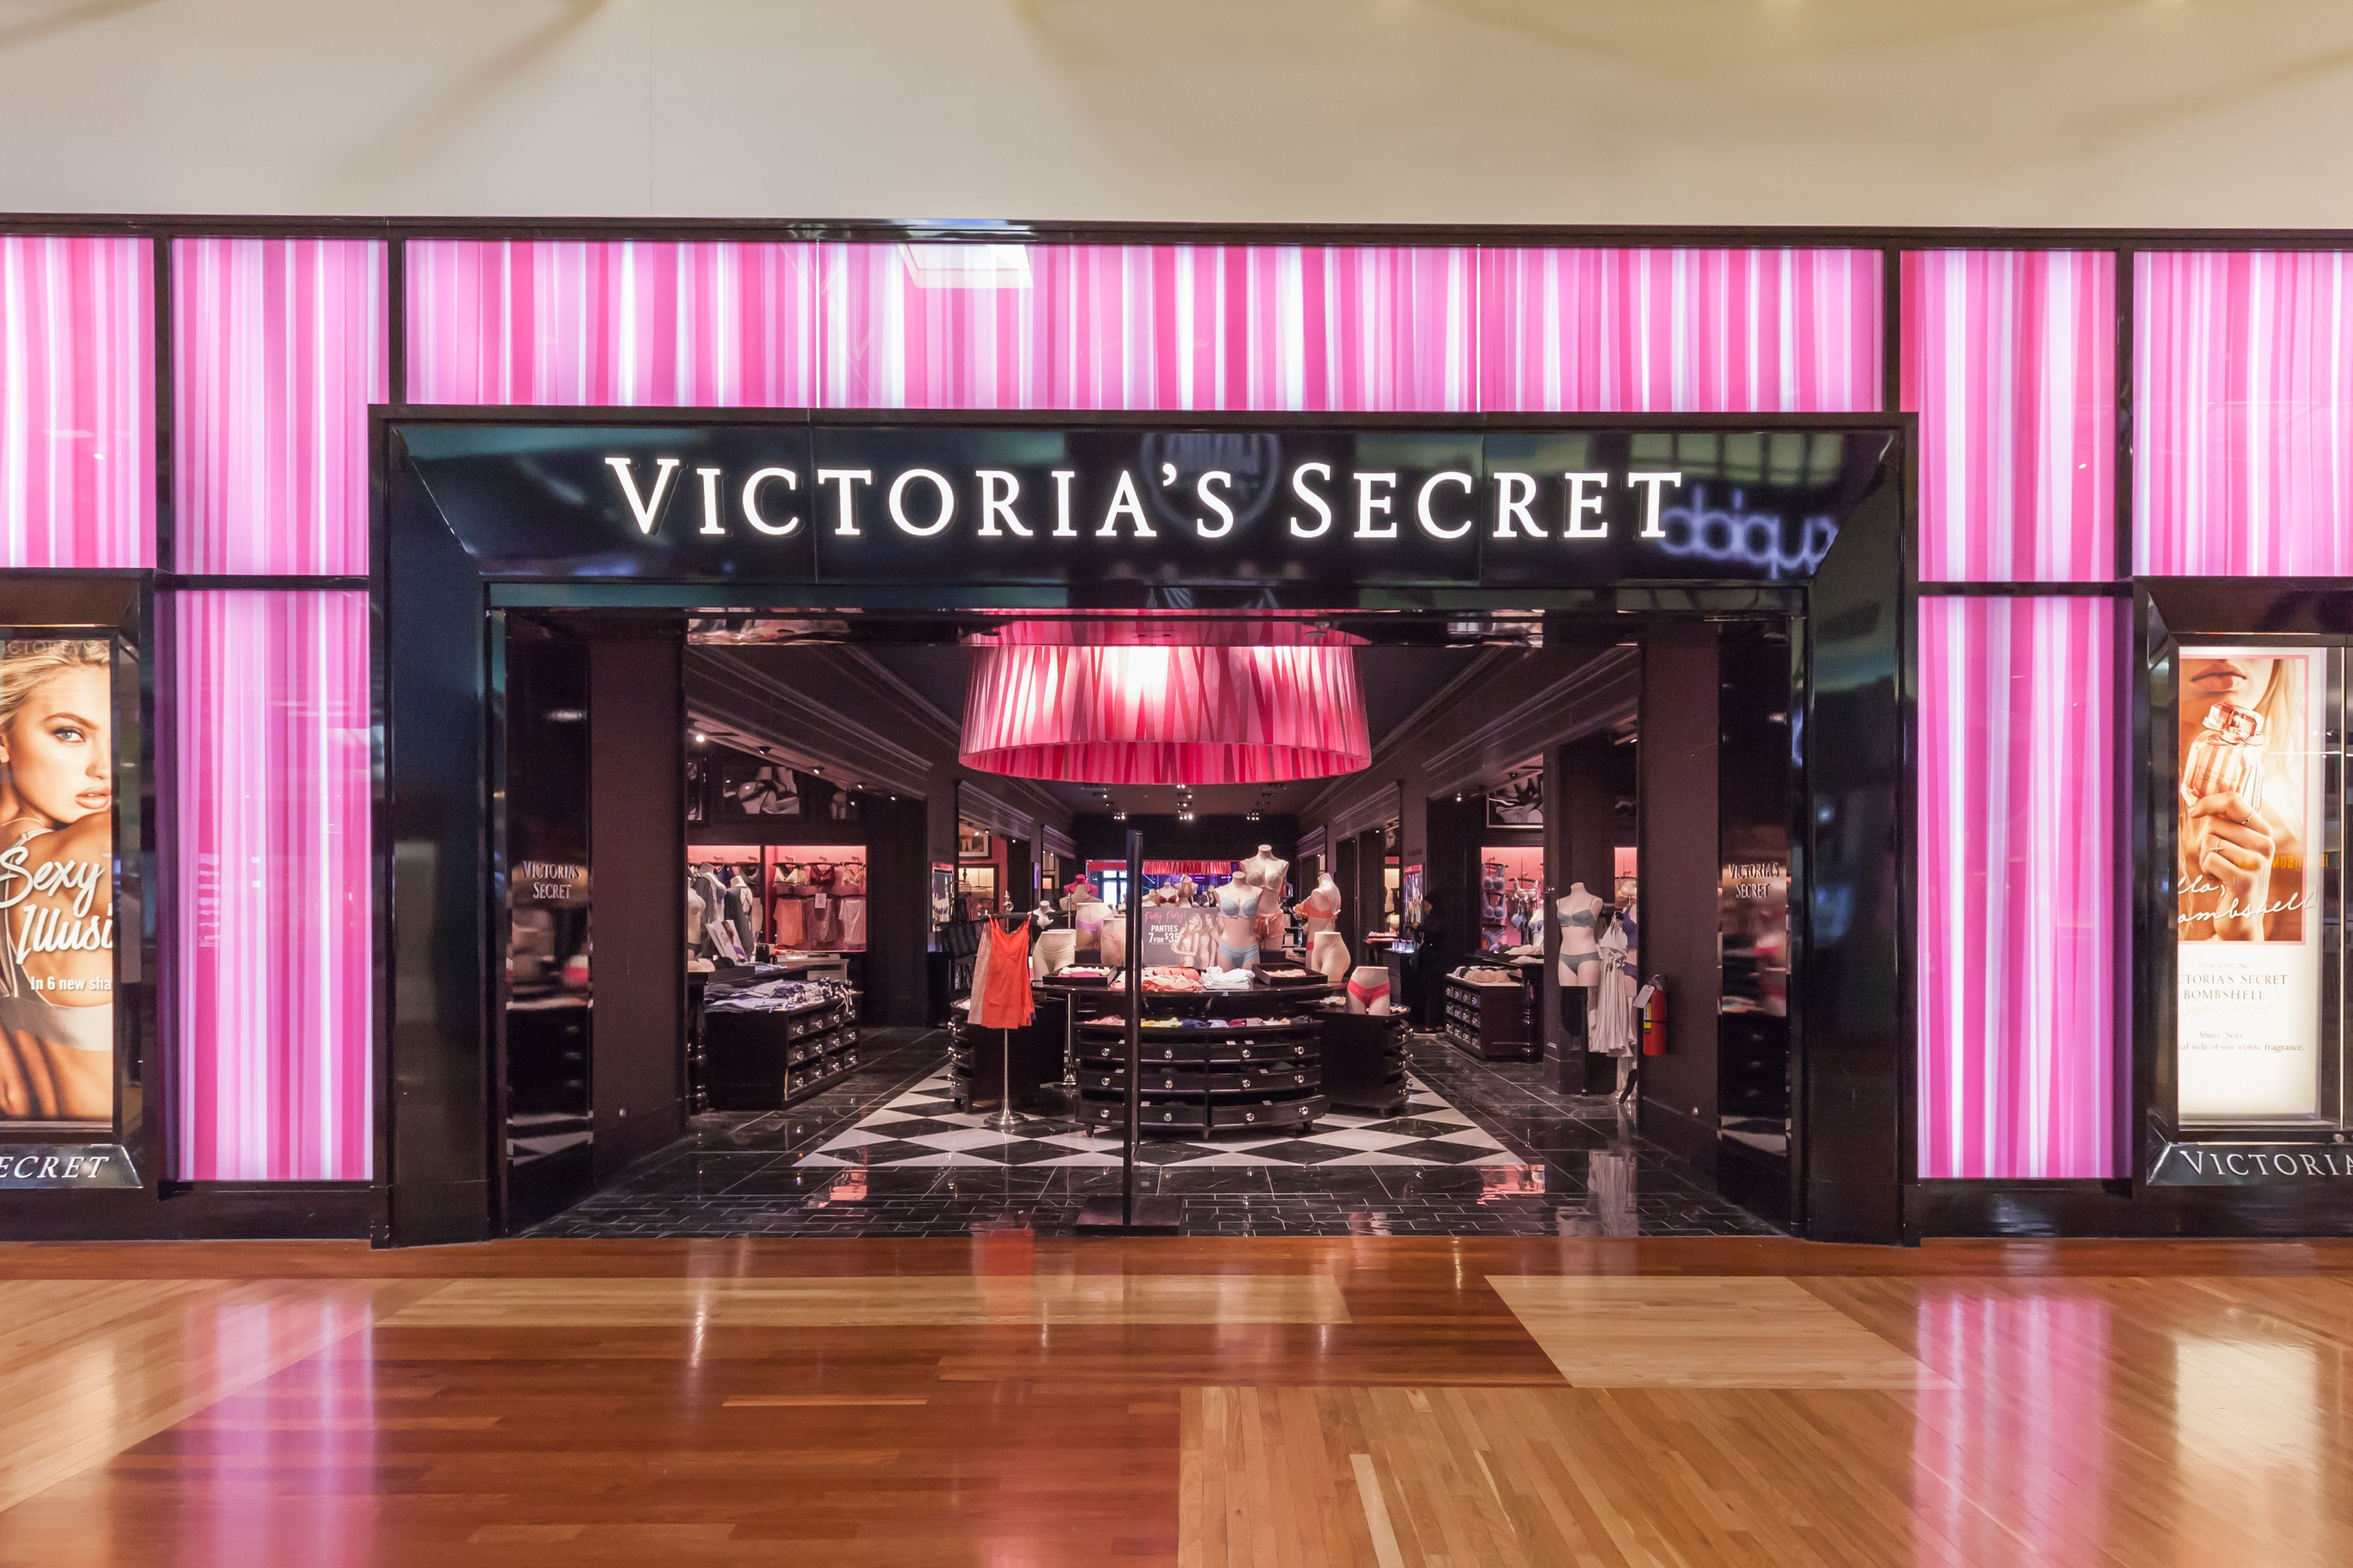 Na zdj. salon sieci Victoria's Secret